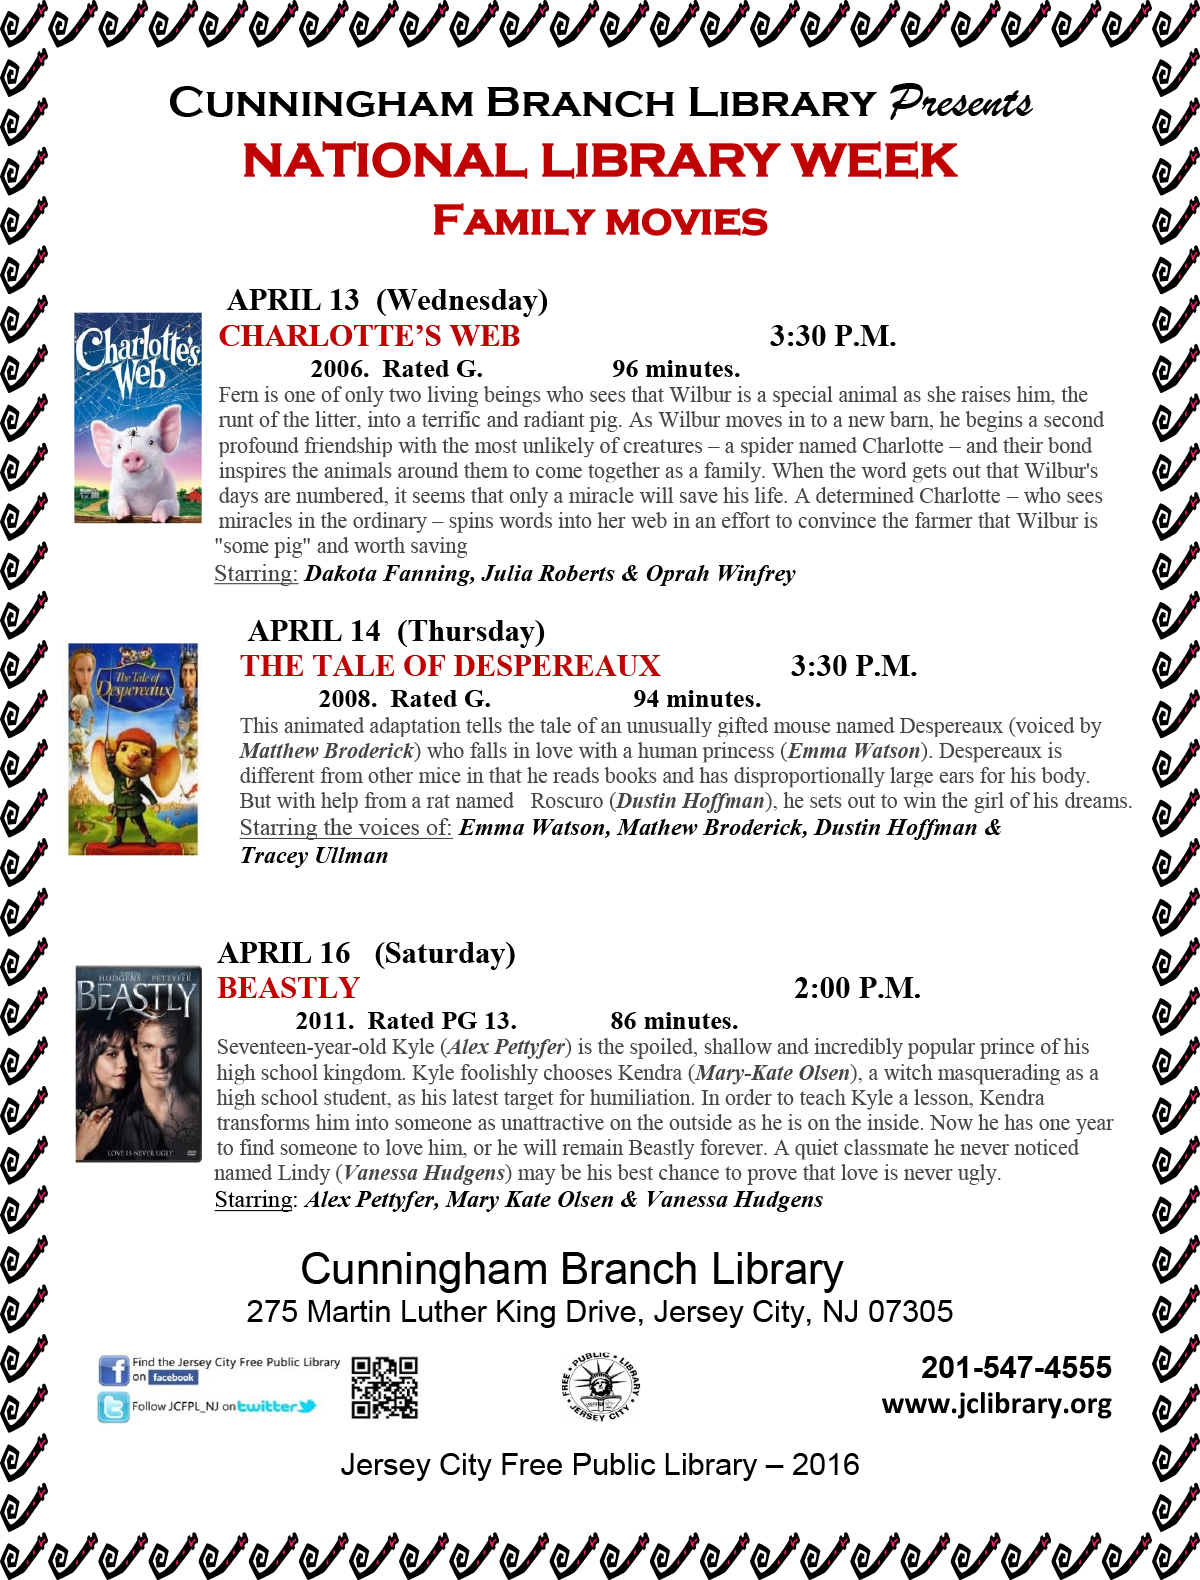 Cunningham Branch Library Presents National Library Week